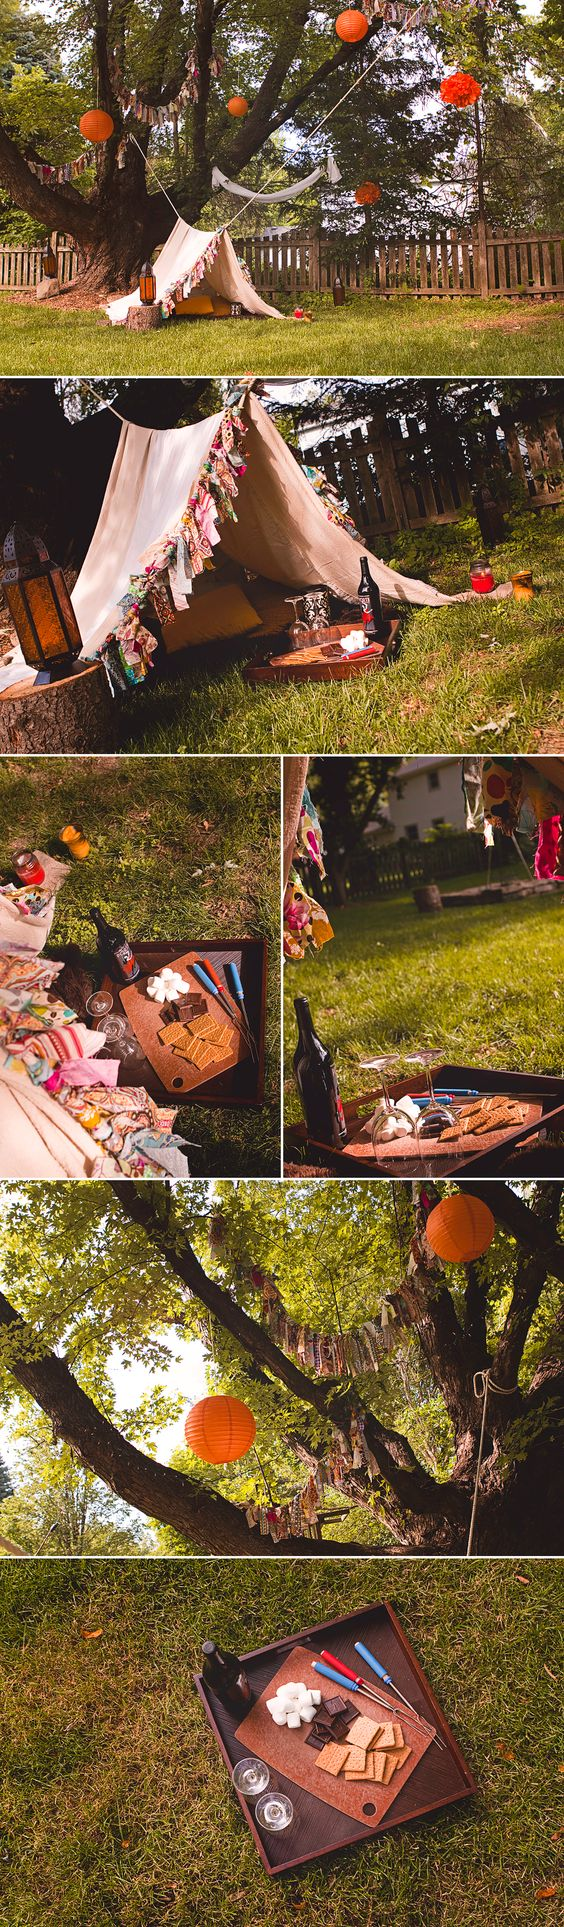 triyae com u003d sunny days backyard camp various design inspiration